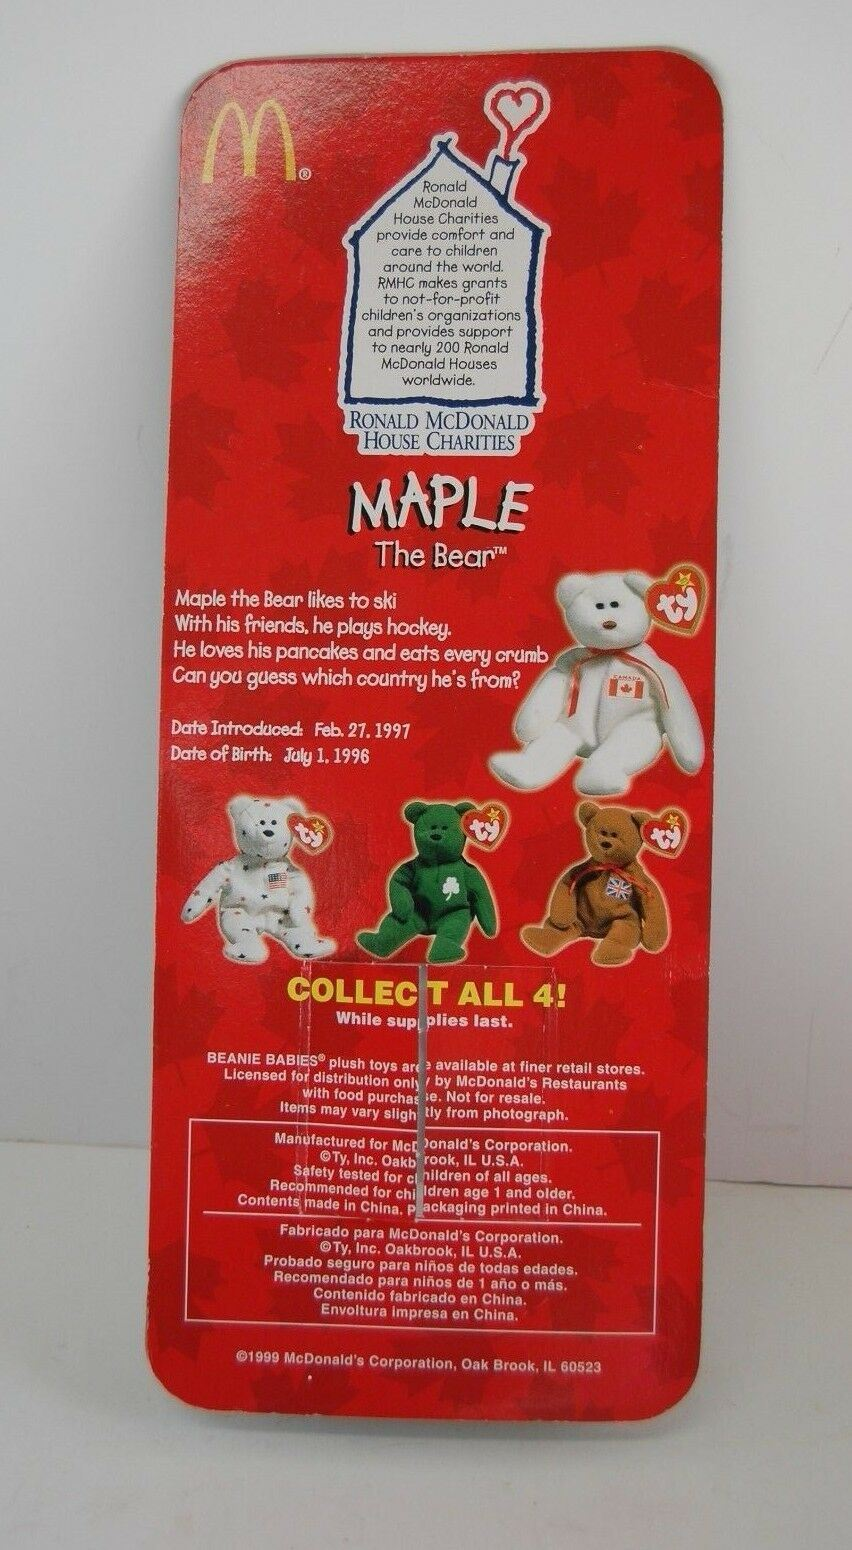 Maple The Bear-1996 McDonald's Ty Beanie Baby Rare Errors 1993 OakBrook Toys